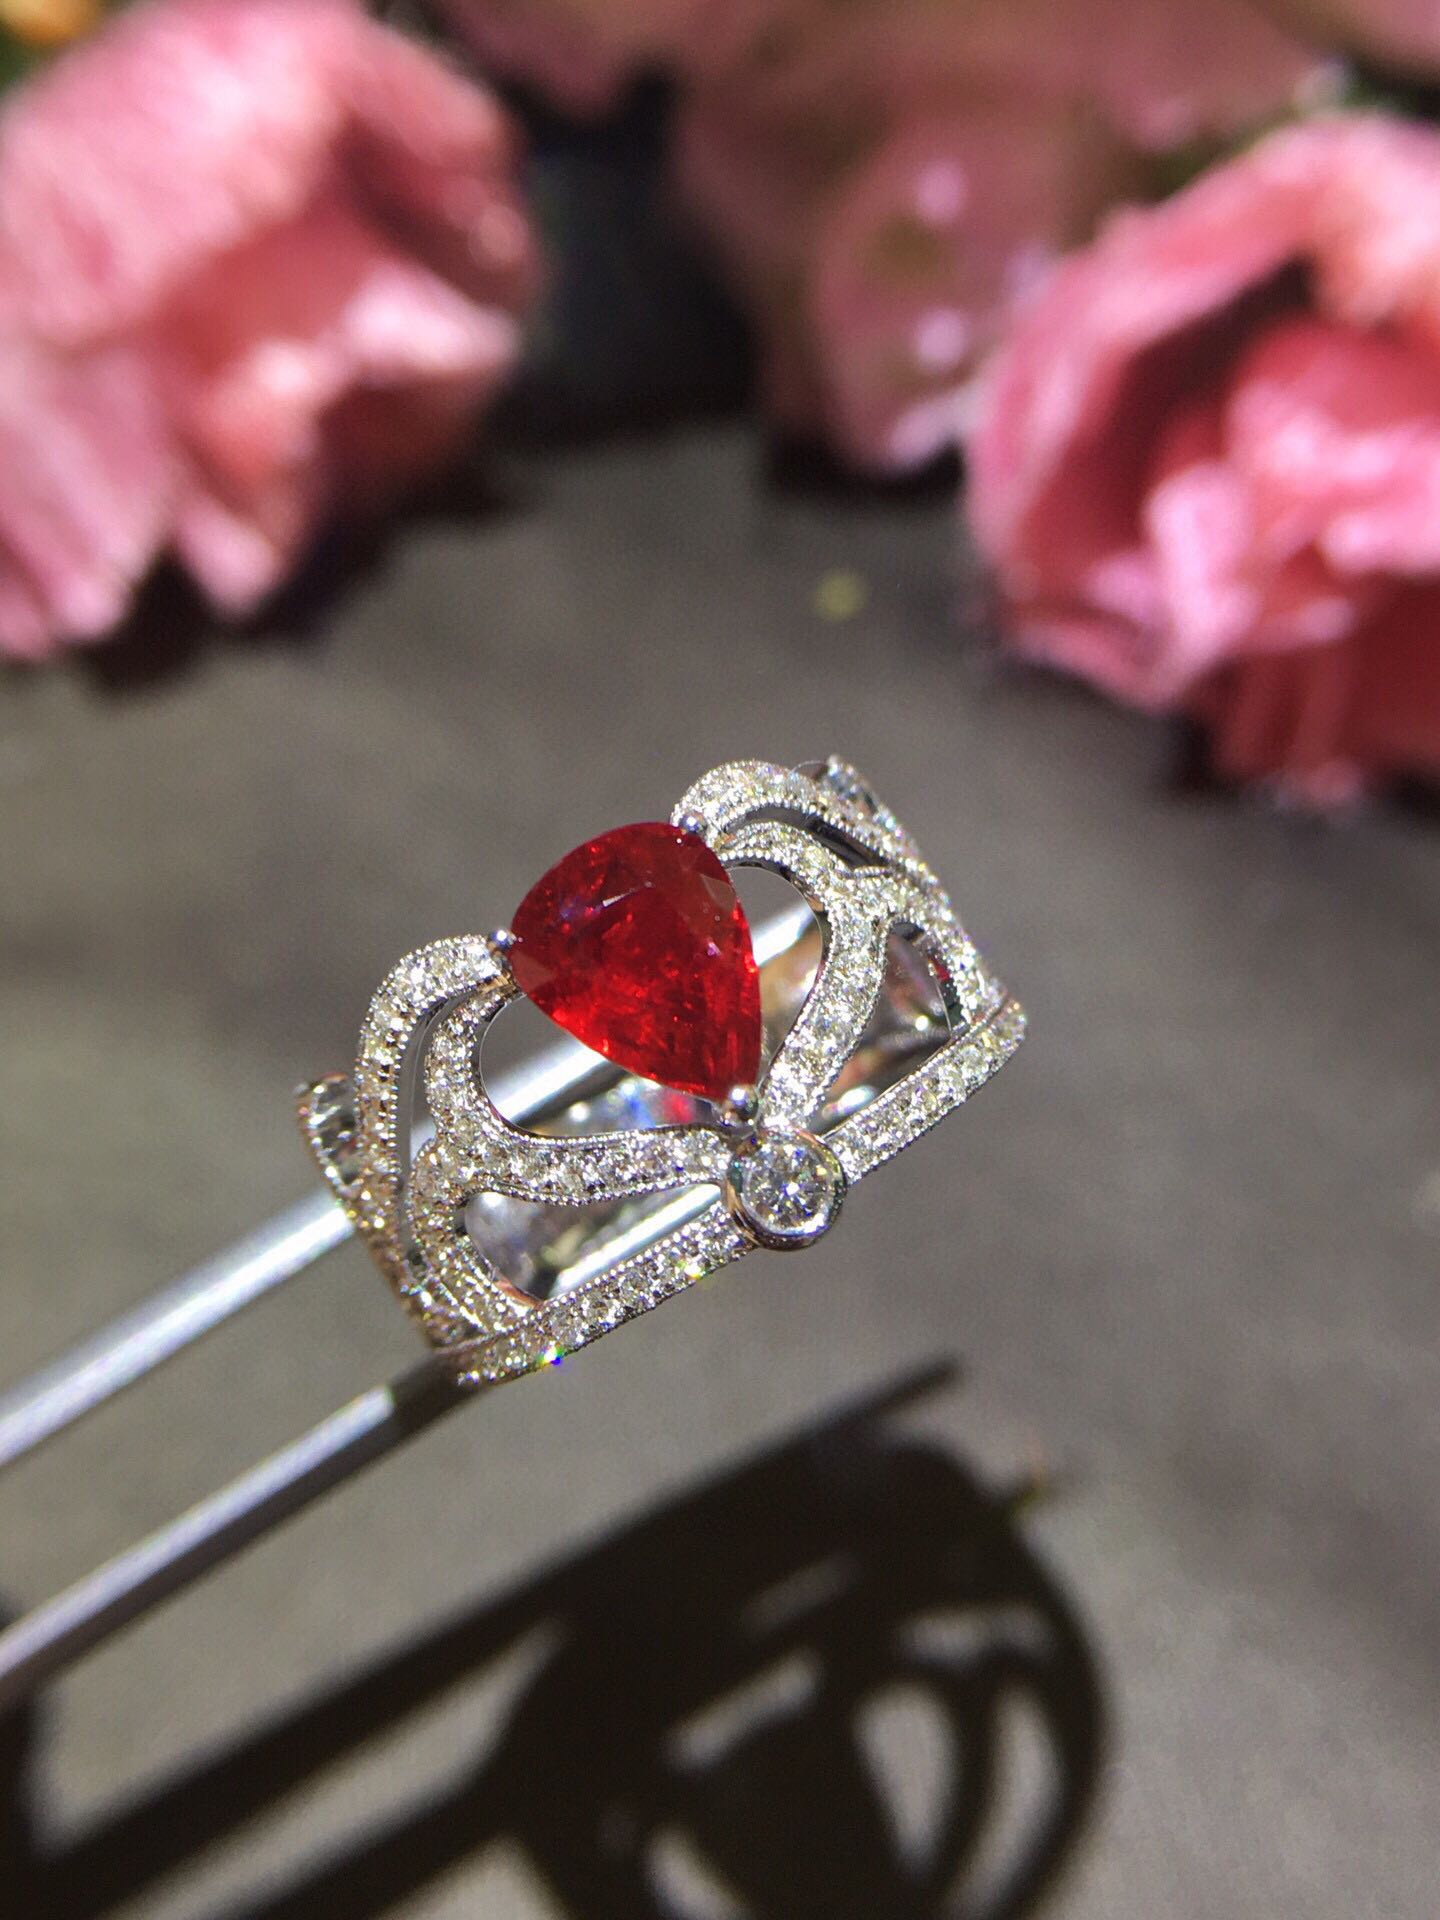 18K golden water drop pigeon blood ruby diamond ring, crystal transparent full of fire color, with gra international certificate